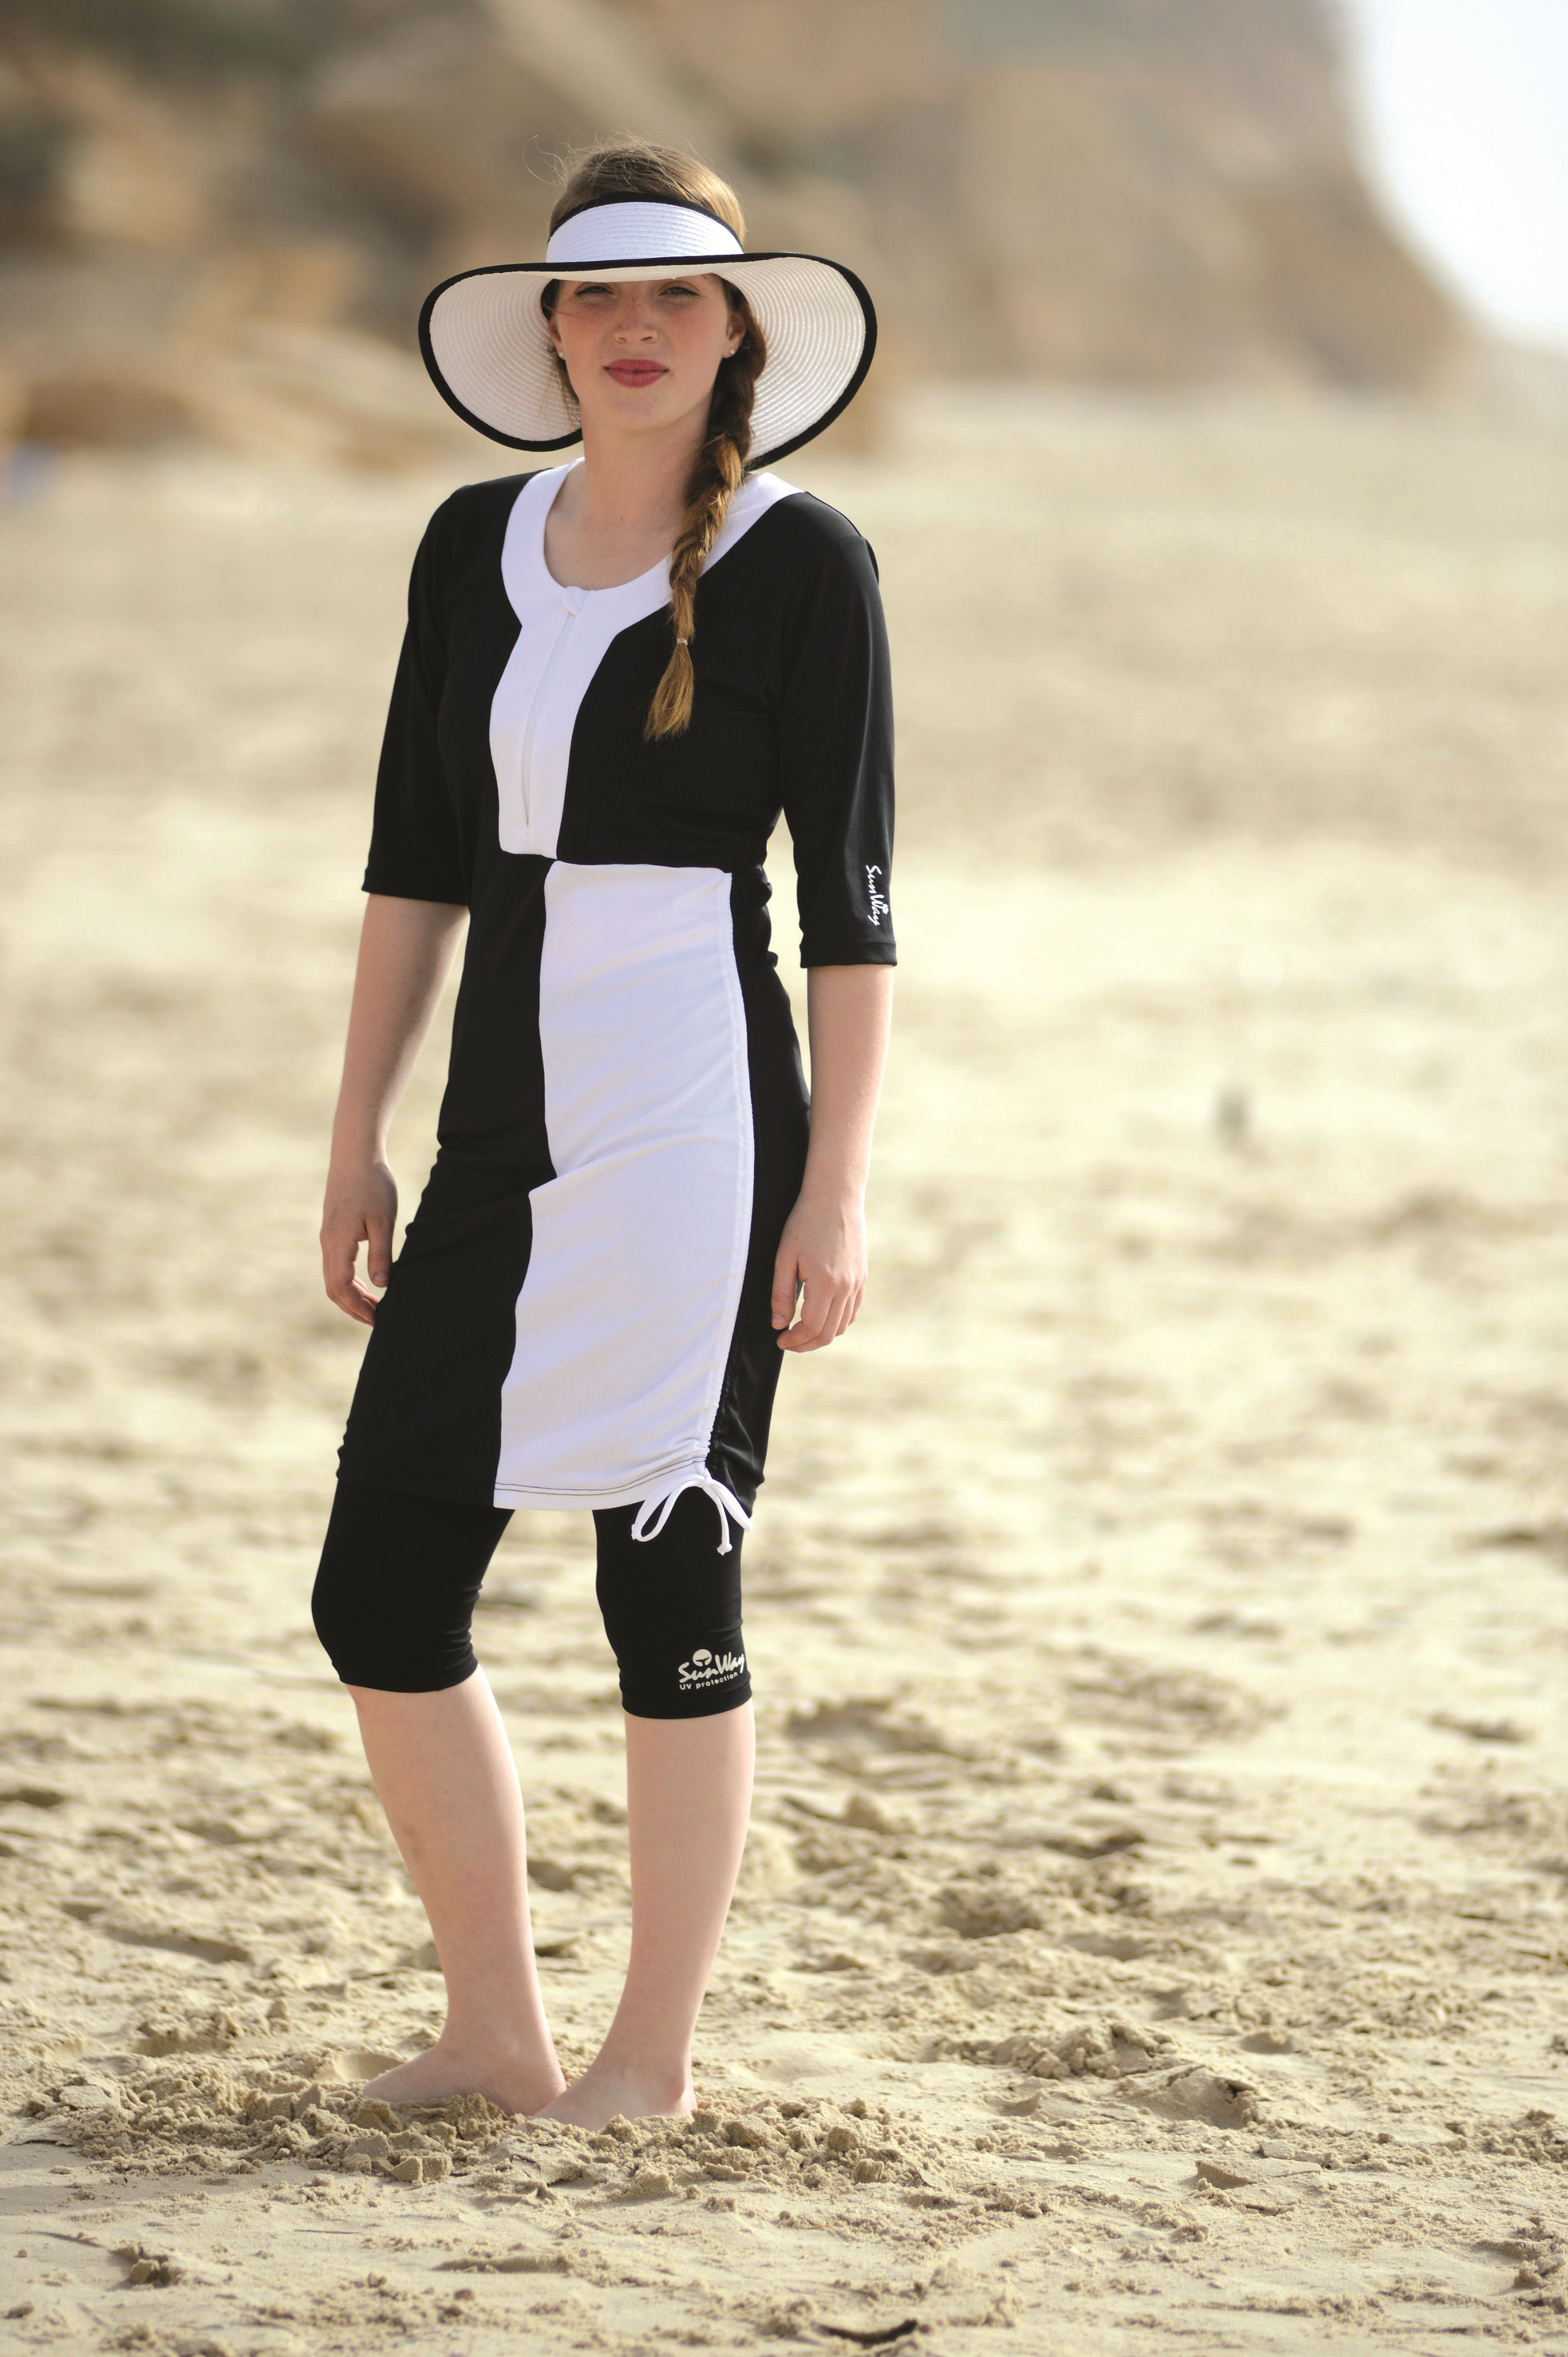 Black and White Modest Swimwear Outfit